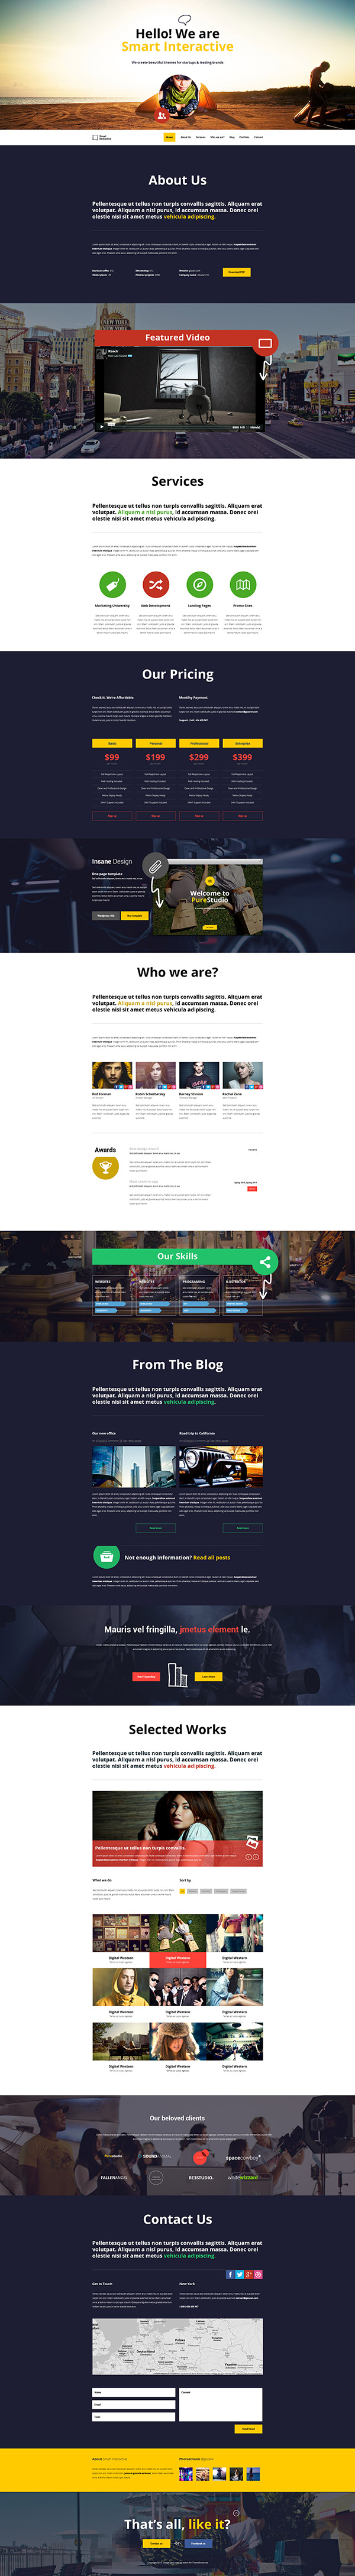 Smart Interactive HTML5 One Page Creative Parallax - 2